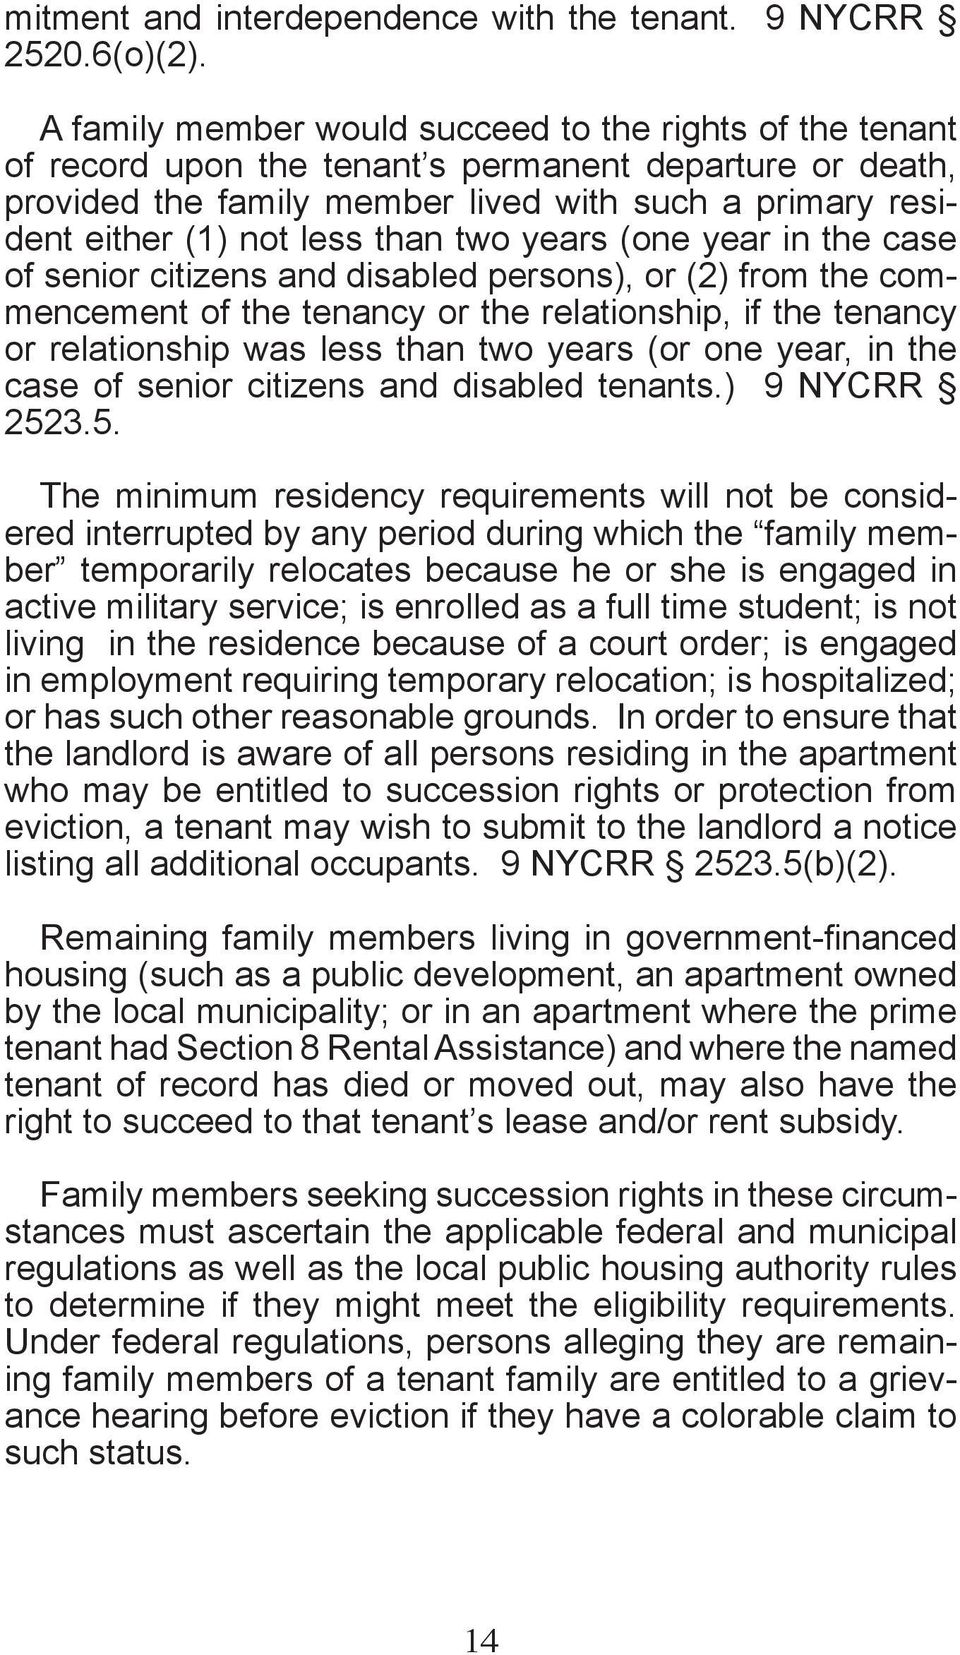 than two years (one year in the case of senior citizens and disabled persons), or (2) from the commencement of the tenancy or the relationship, if the tenancy or relationship was less than two years